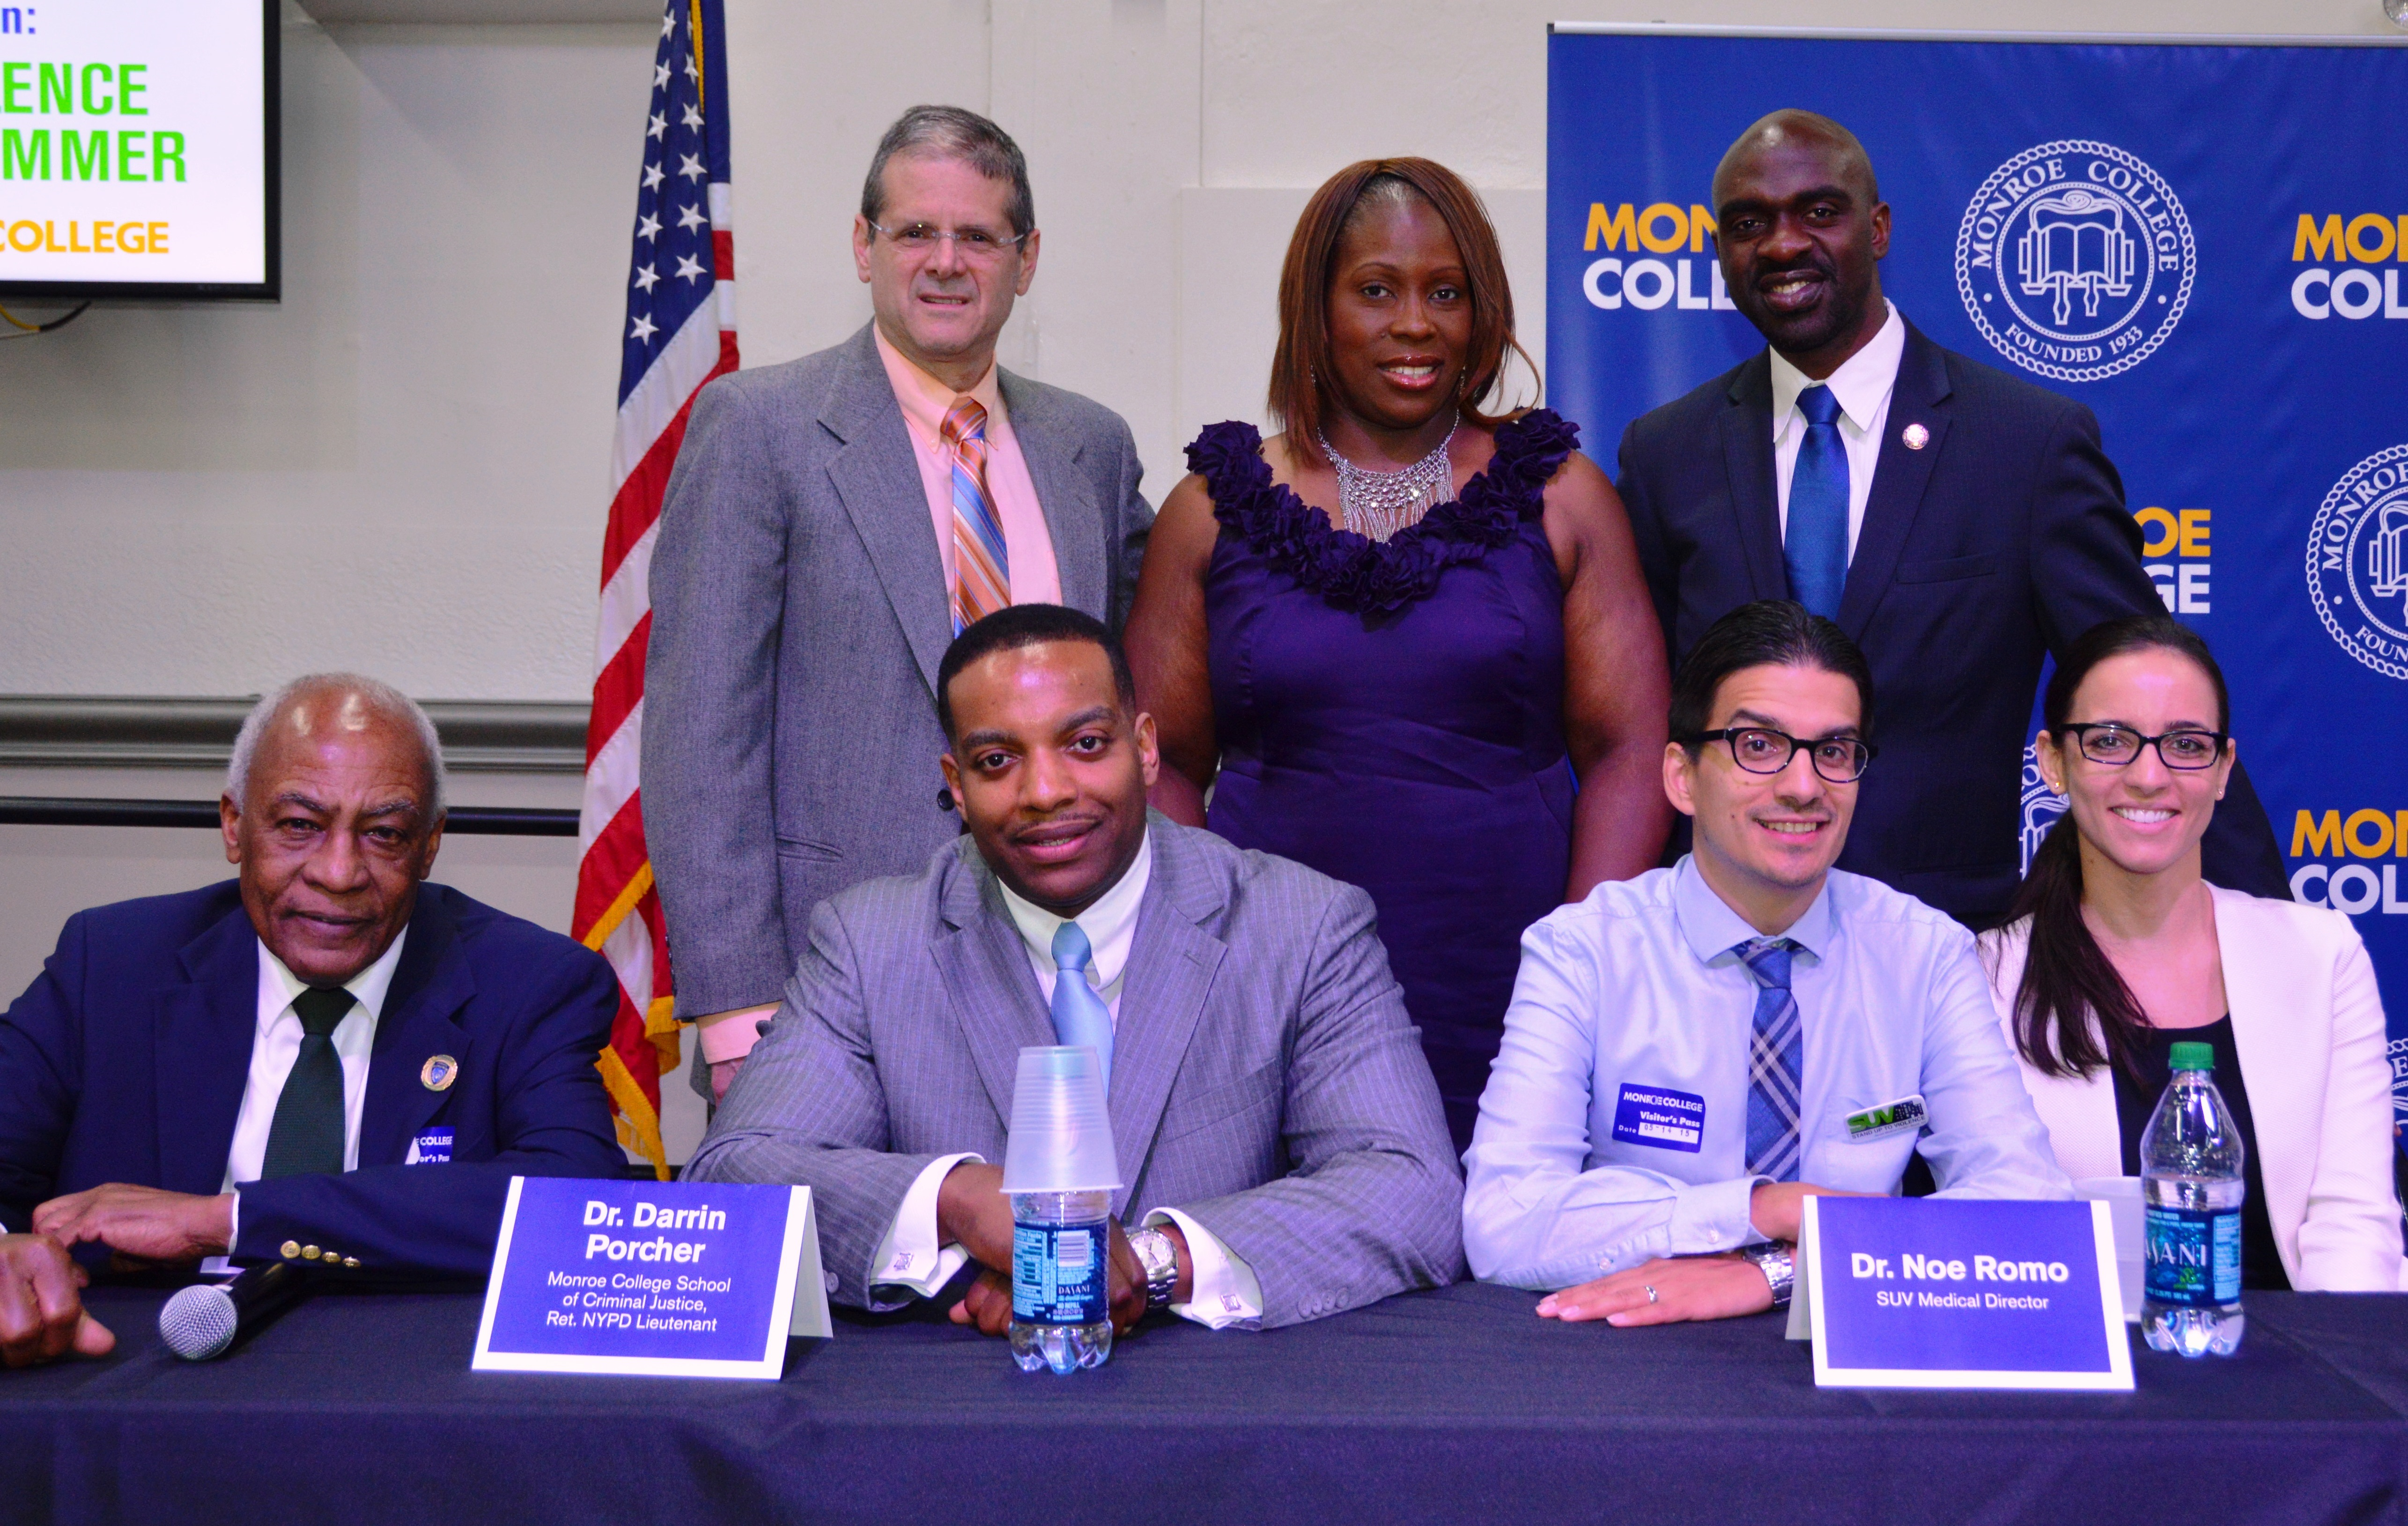 Monroe College and Jacobi Medical Center Stand Up to Violence